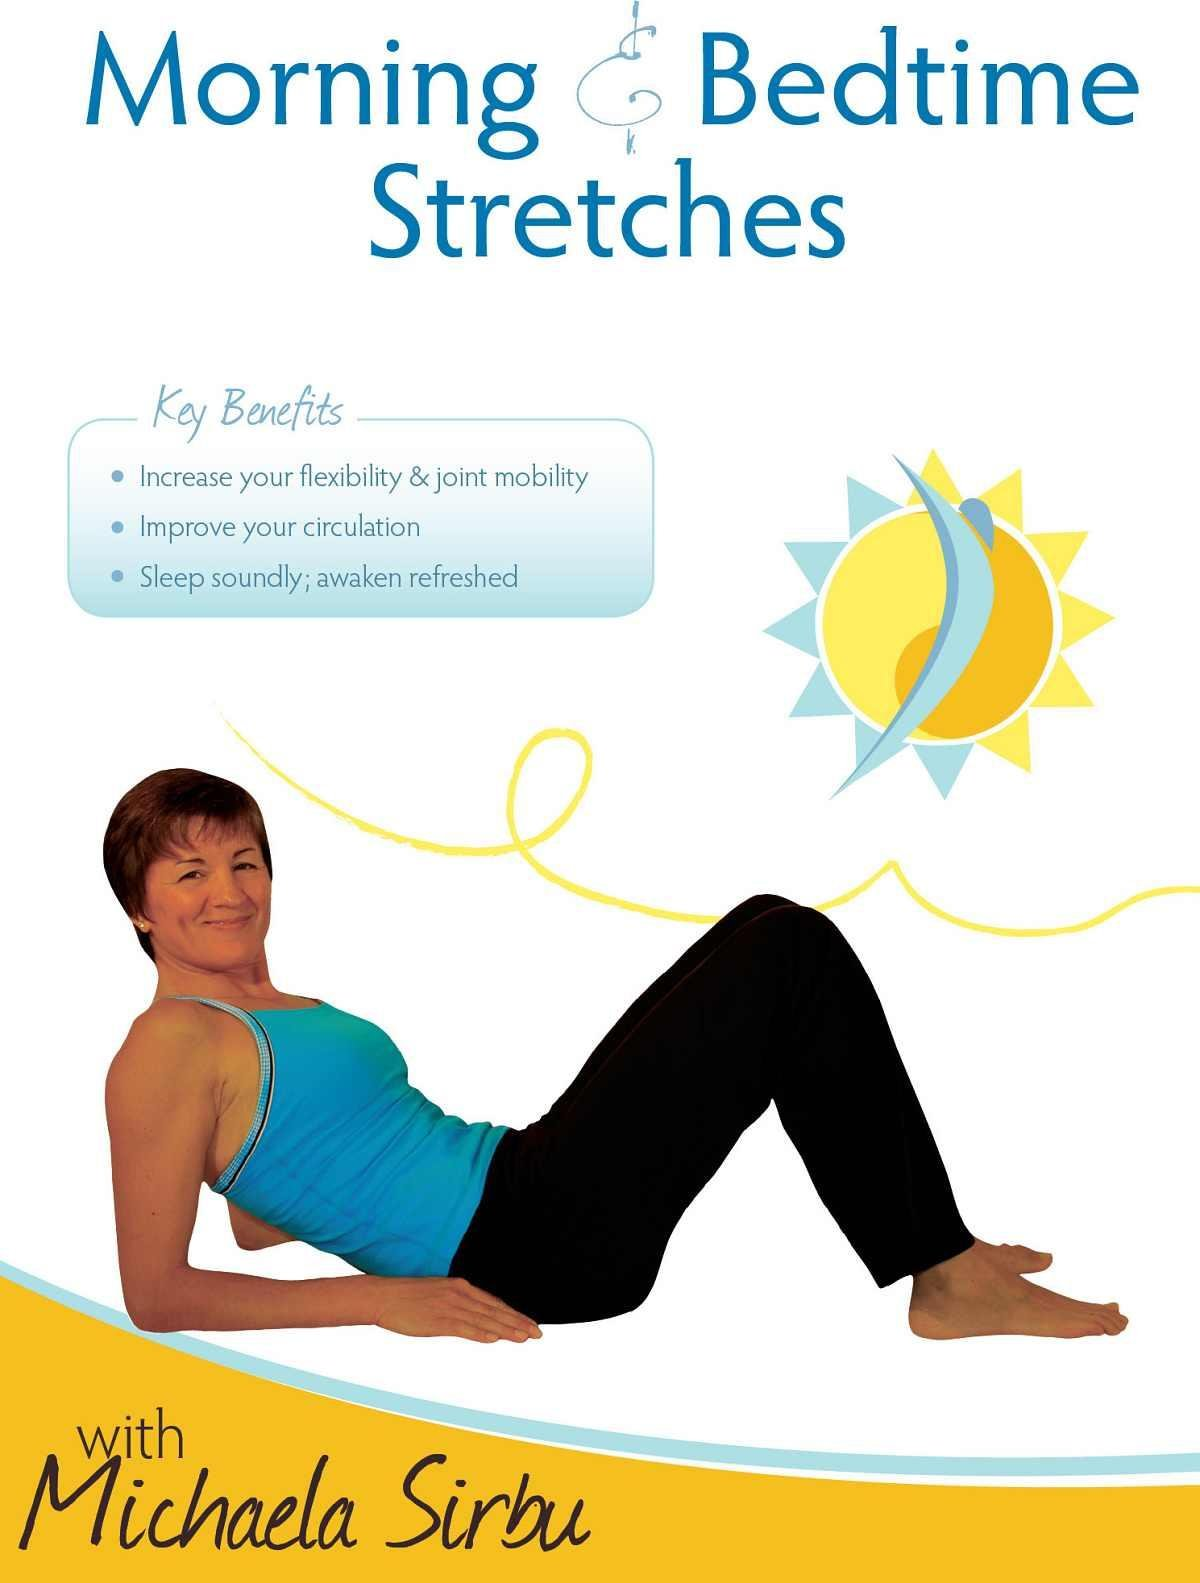 Morning & Bedtime Stretches